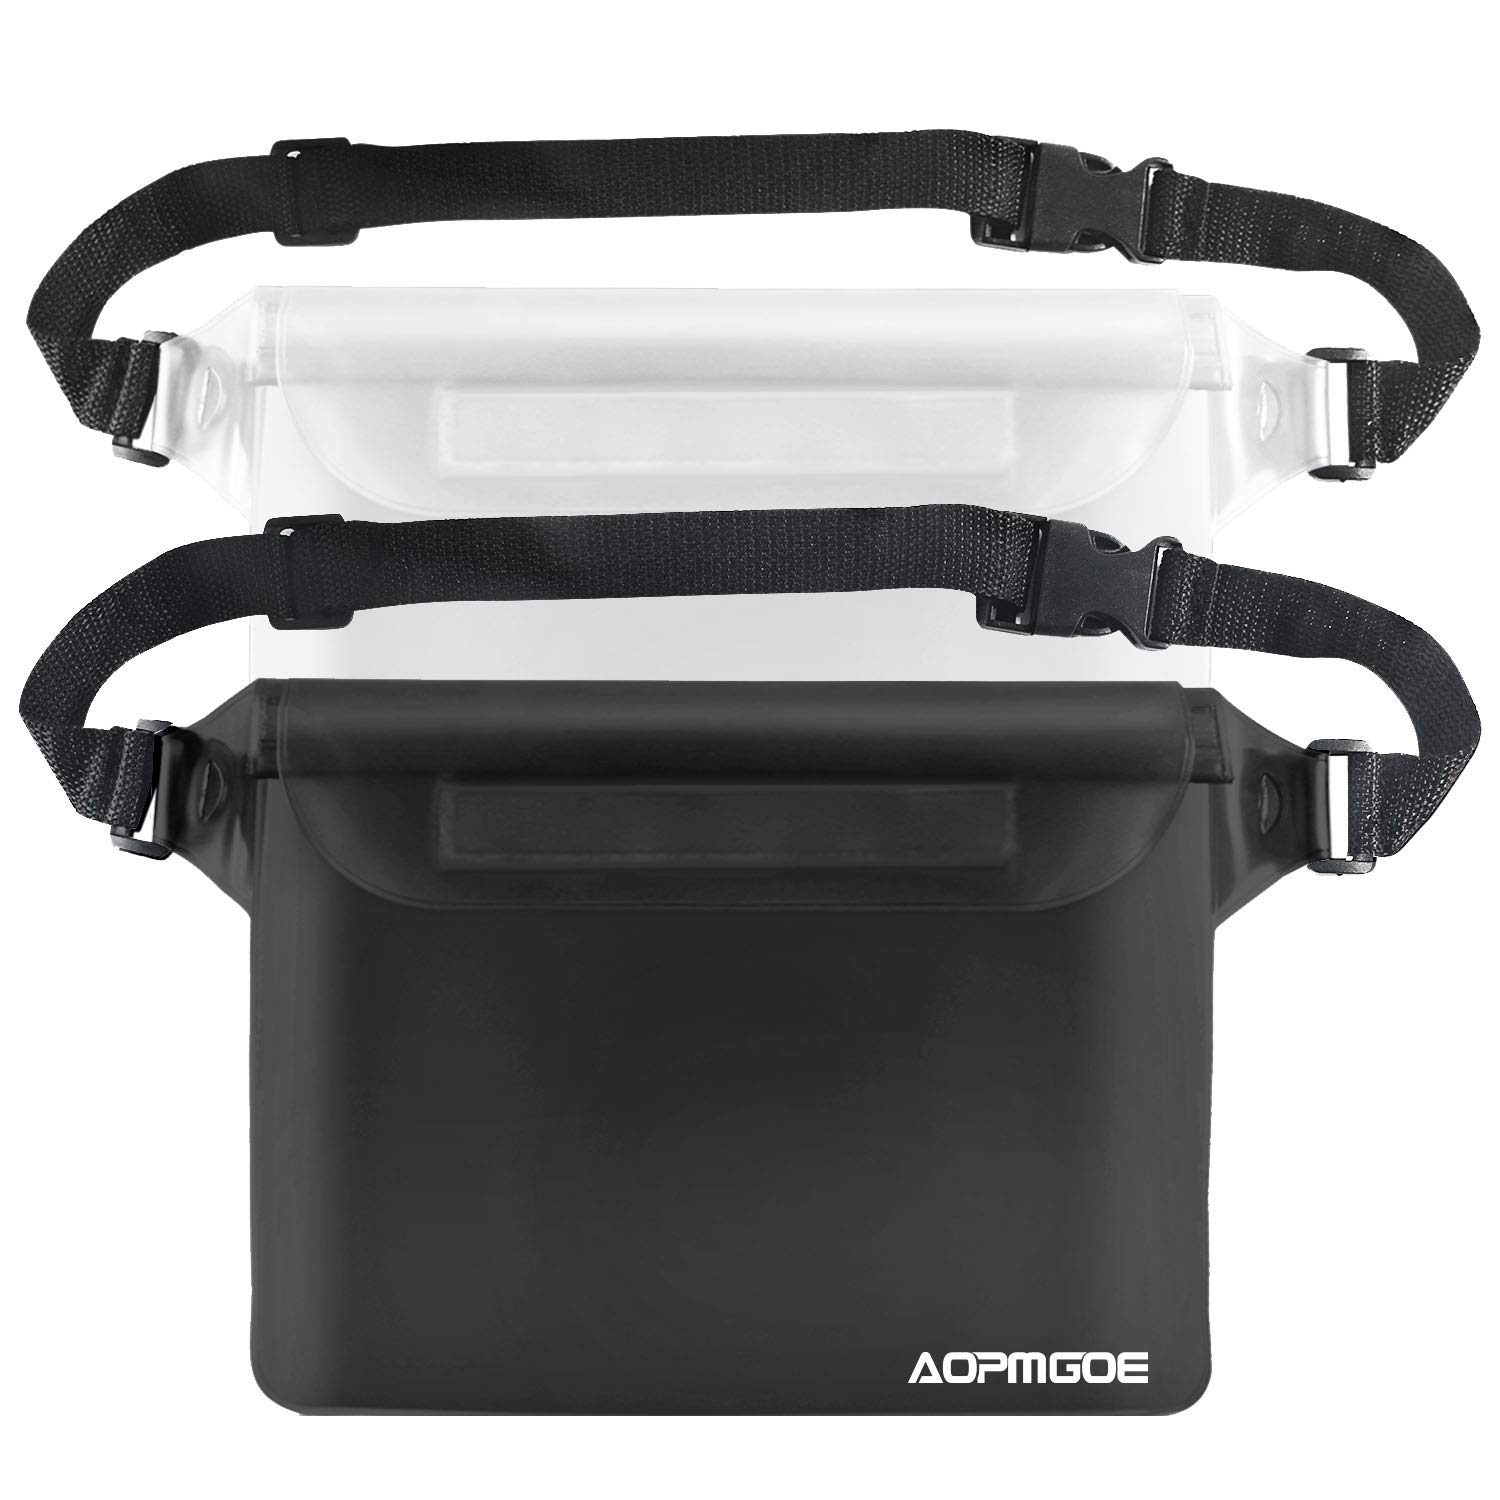 inxxmix IPX8 Waterproof Pouch with Waist Strap Black//Clear 2Pack |Waterproof Phone Pouch Kept Cell Phone Cash Card Keys Zip Wallet Strap Safe Dry| Kayaking Swimming Boating Snorkeling Beach